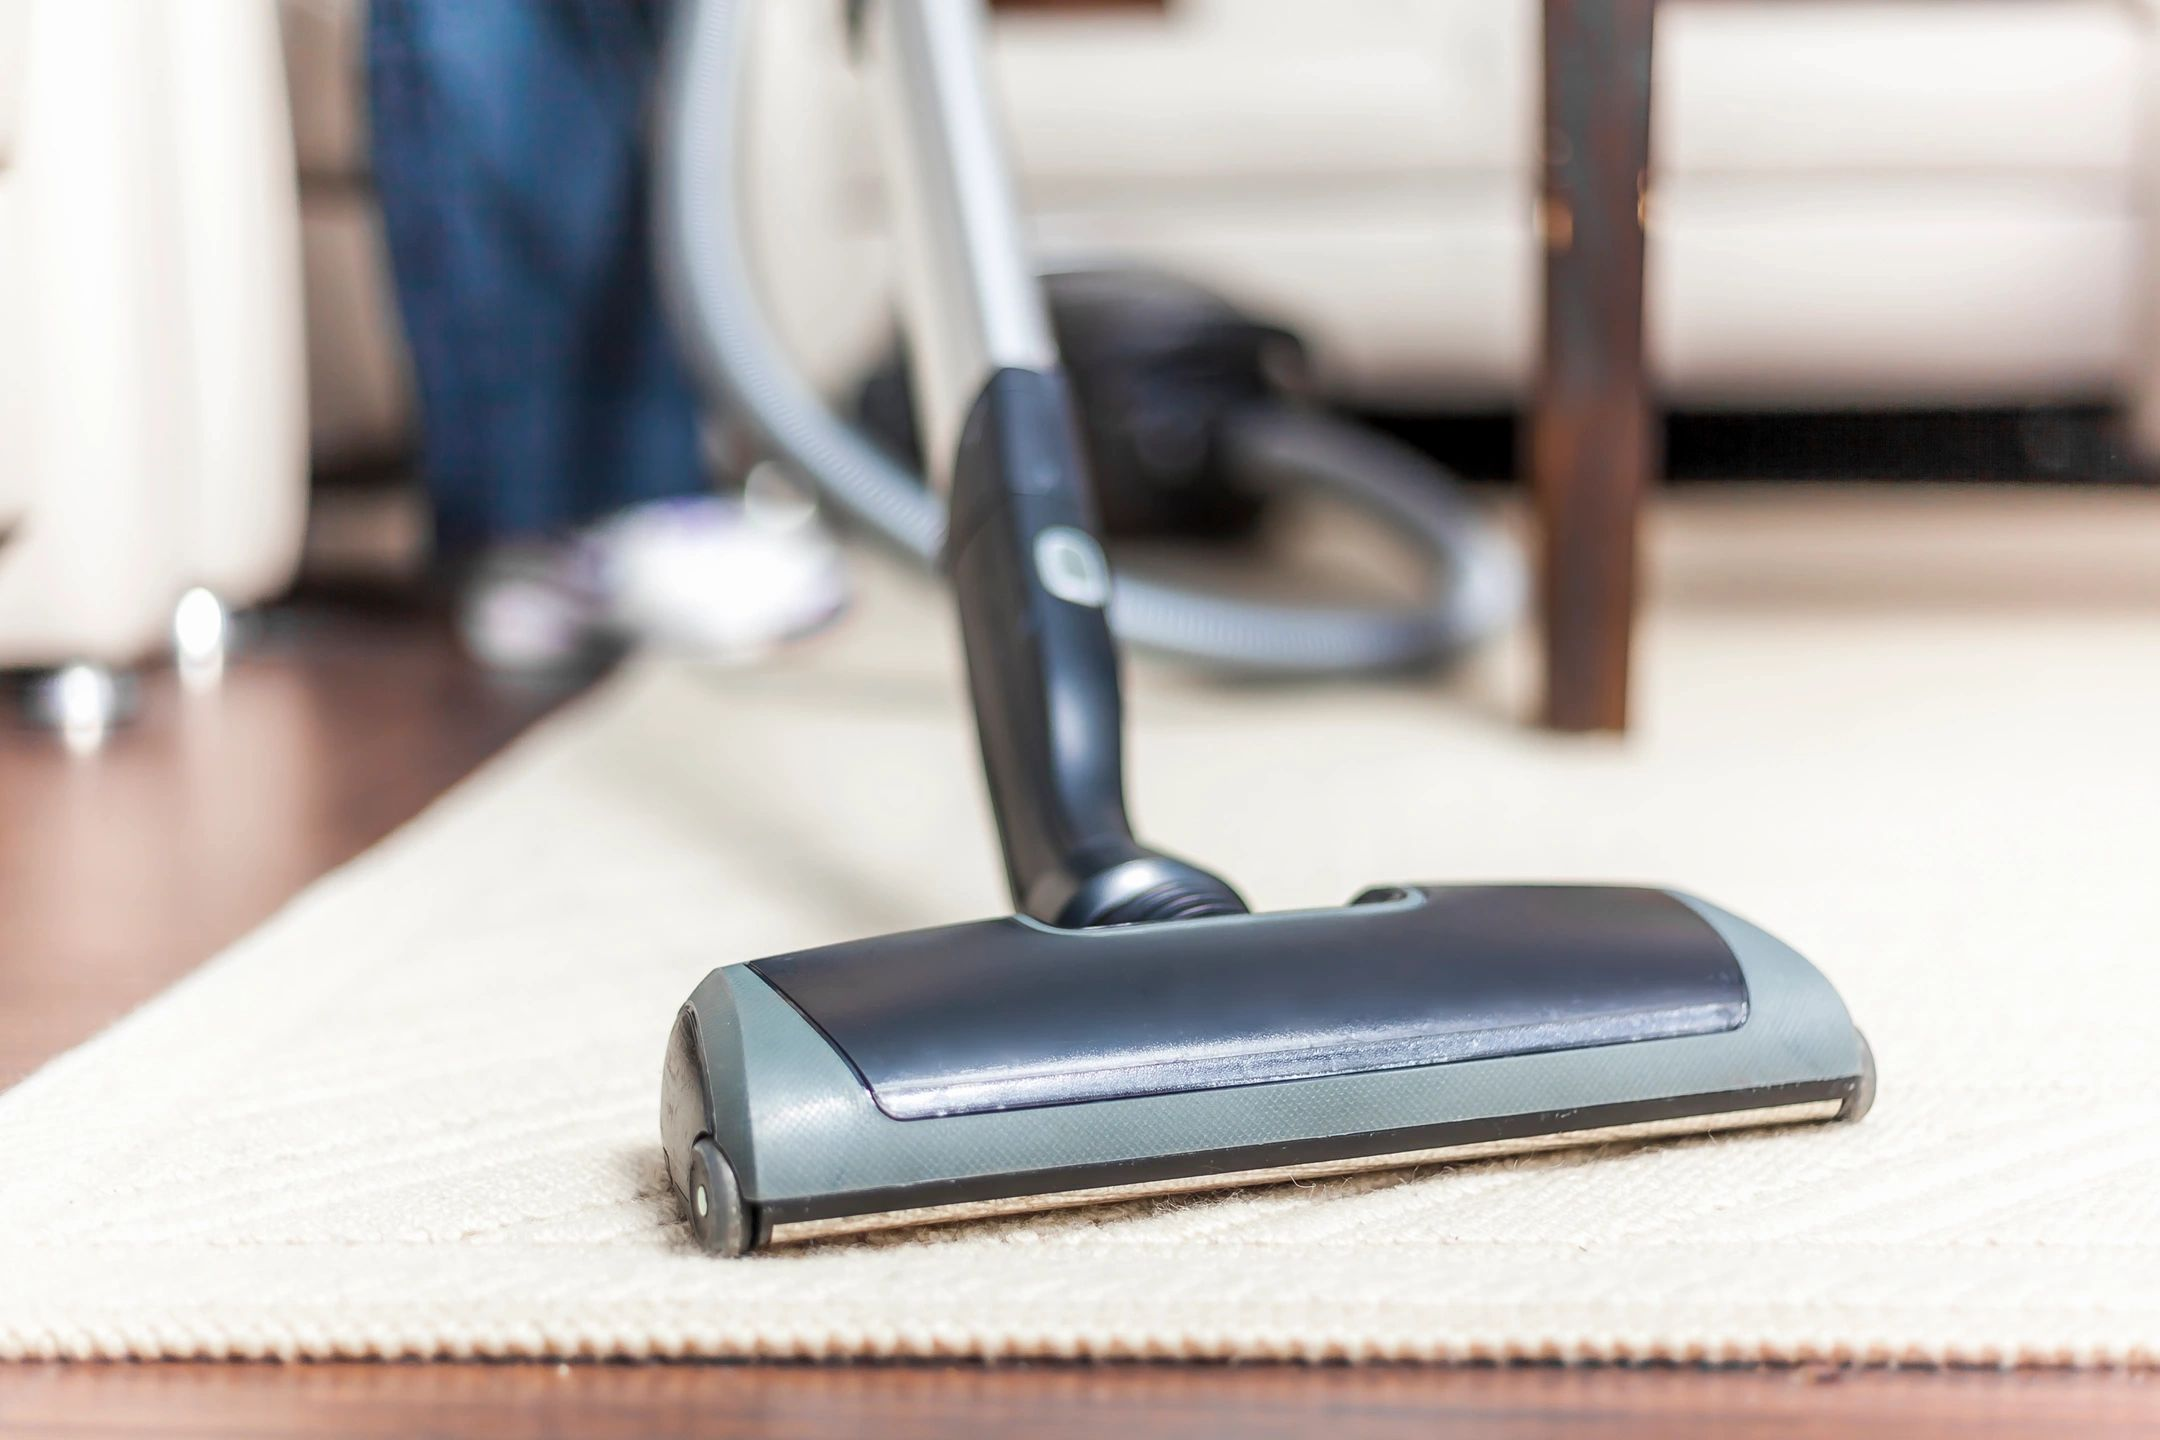 Global Clean goes beyond most cleaning services, by providing industrial level carpet cleaning. For example, we provide dry vacuuming and steam extraction in the Toronto and Greater Toronto Area.